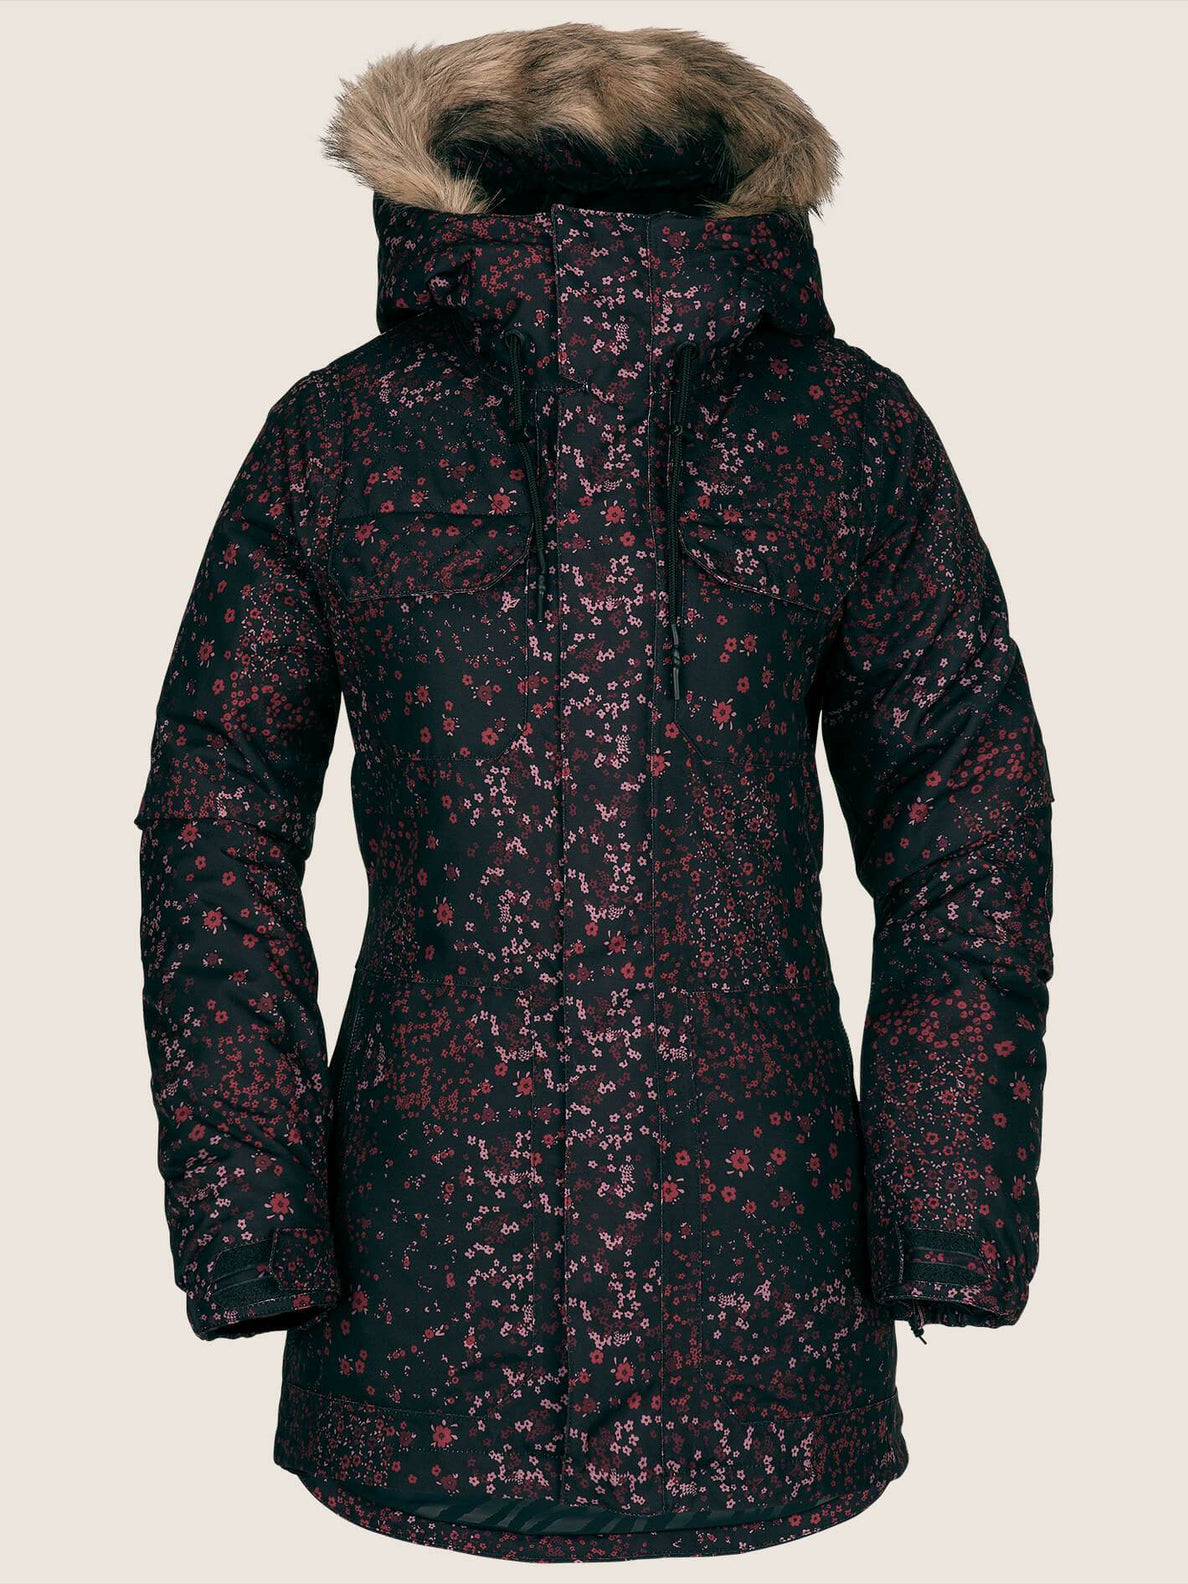 bfdc380baf46 Shadow Insulated Jacket - Snowboarding